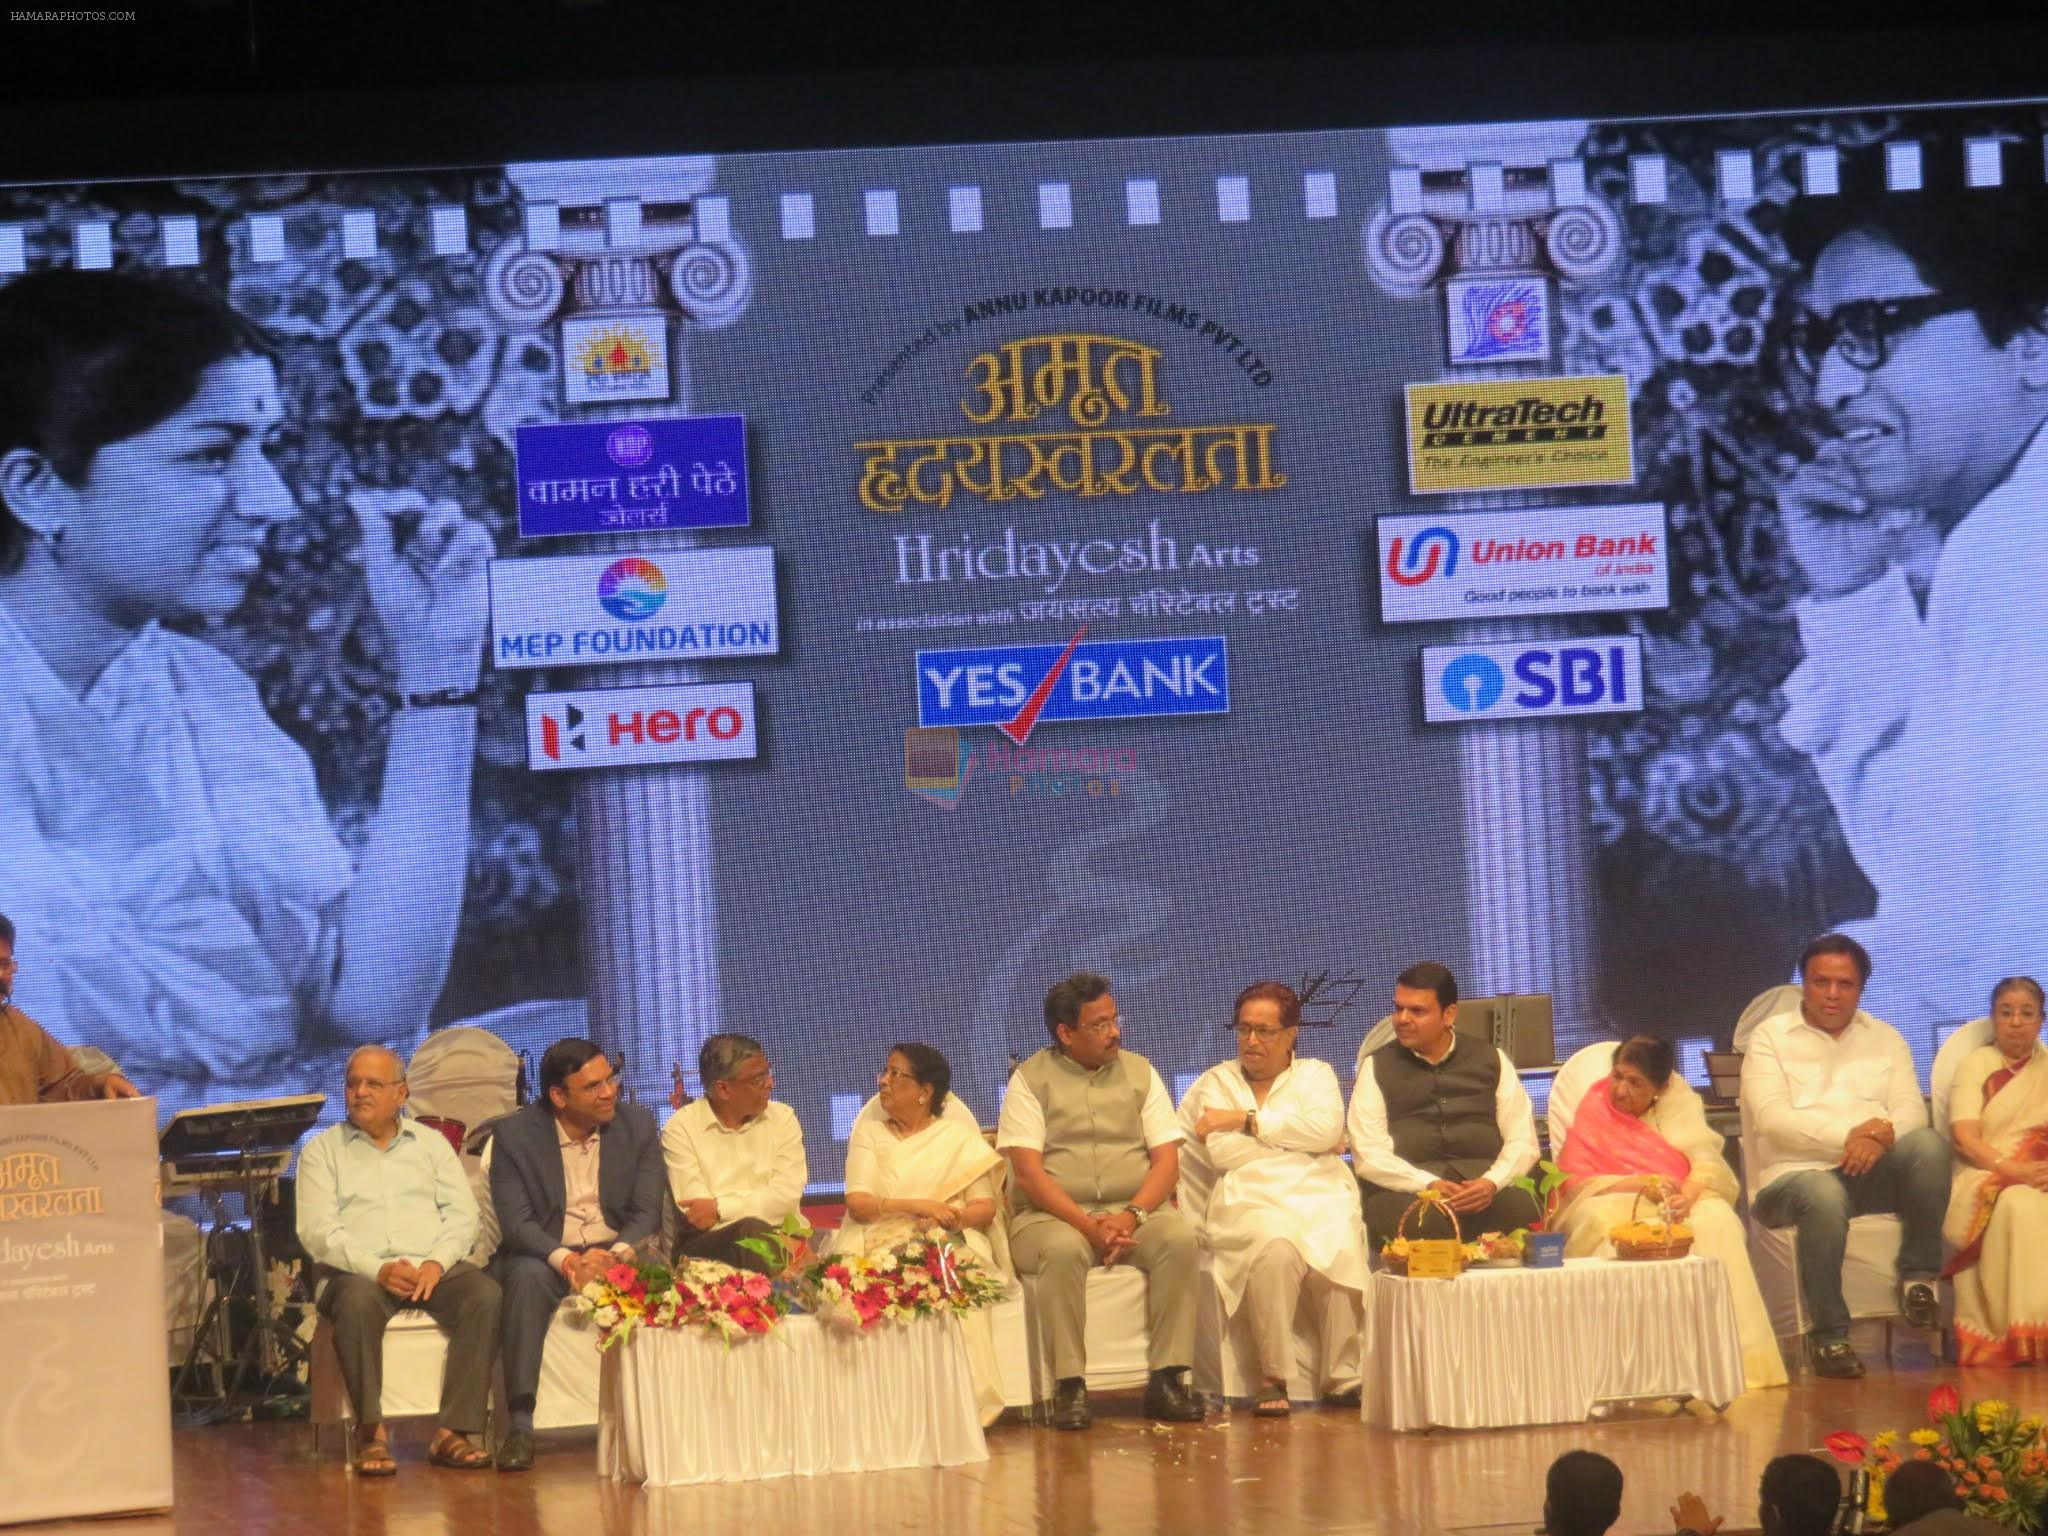 Lata Mangeshkar Celebrating her 75th glorious years of musical journey on 26th Oct 2017